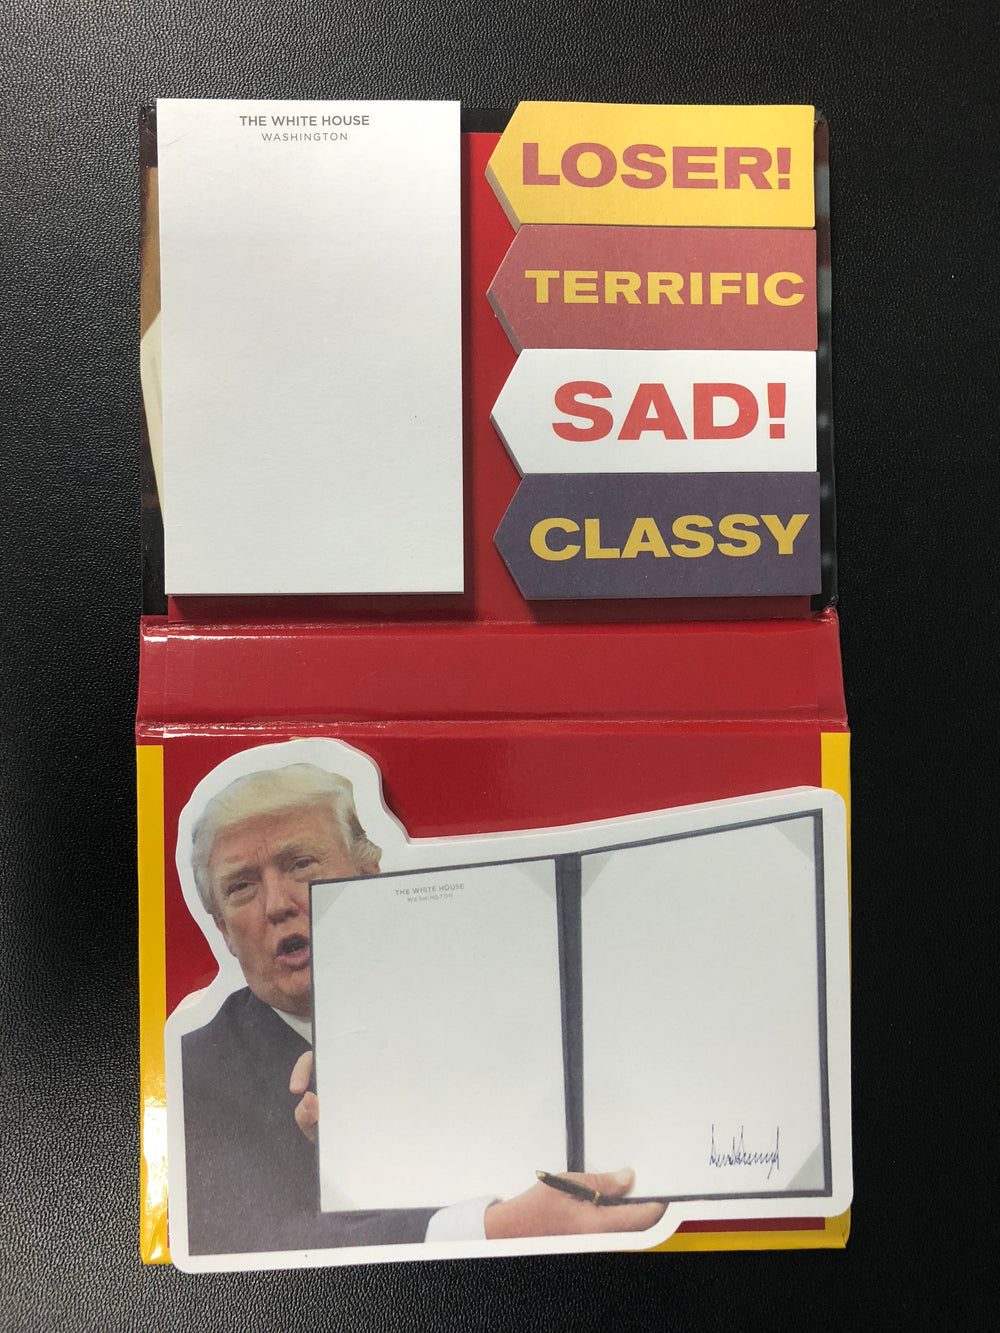 Trump's Executive Orders Sticky Notes